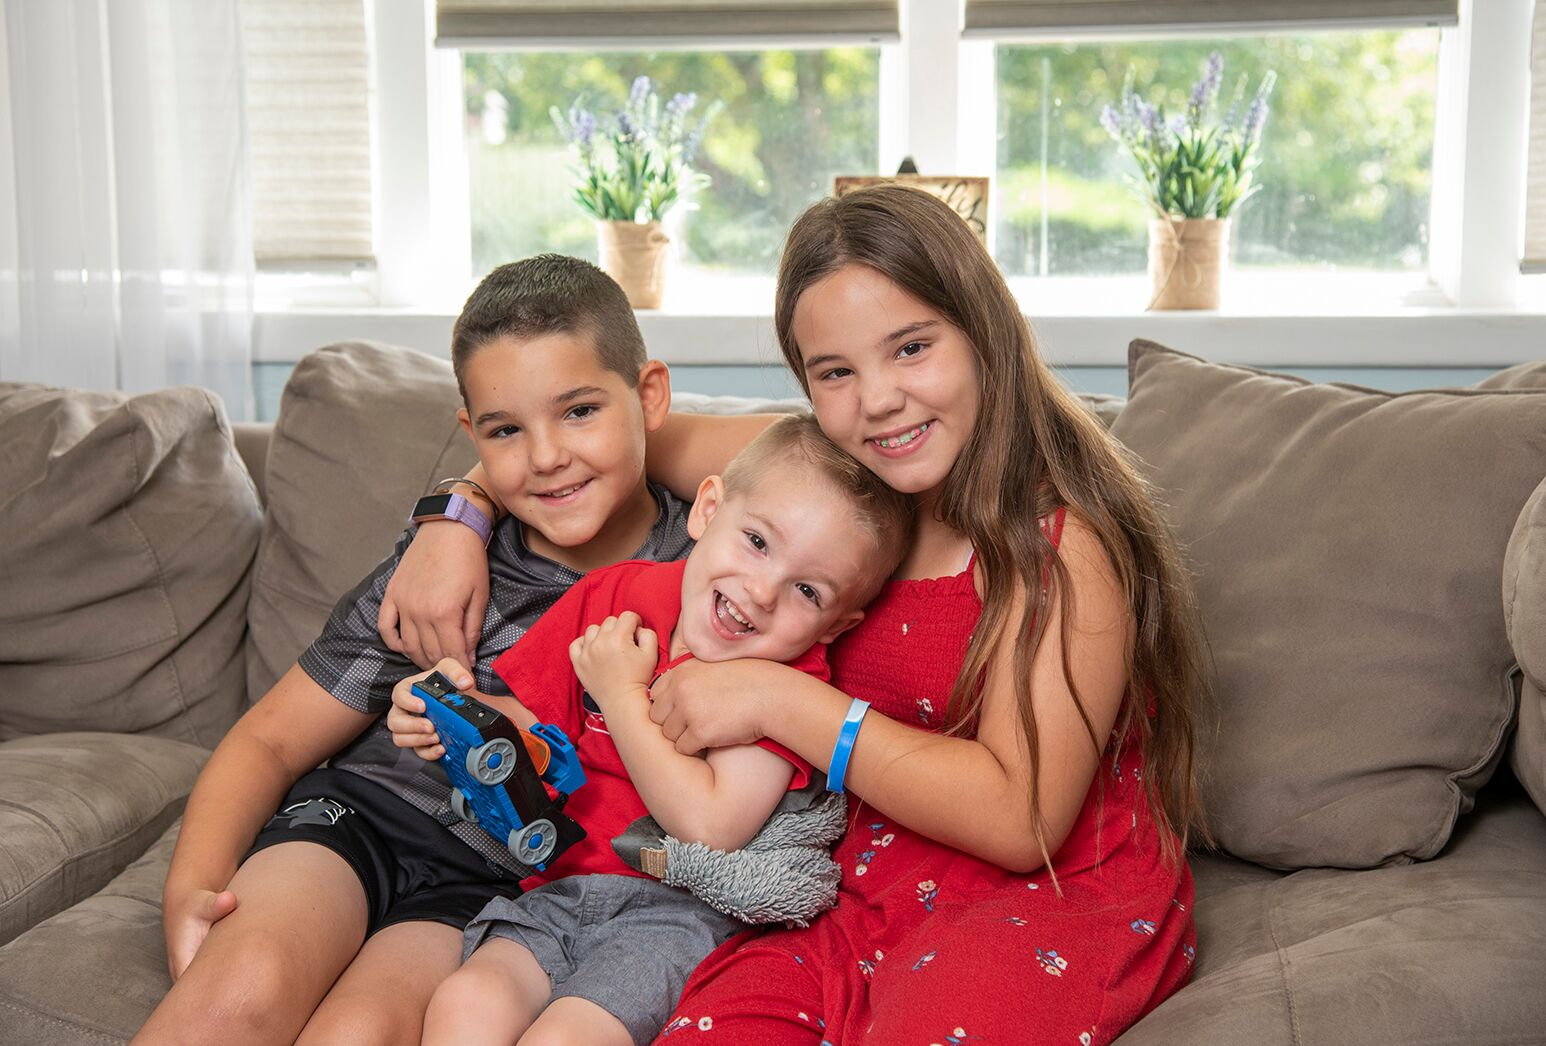 Two boys and a girl in a red dress with long hair, smiling and cuddling on a brown couch.